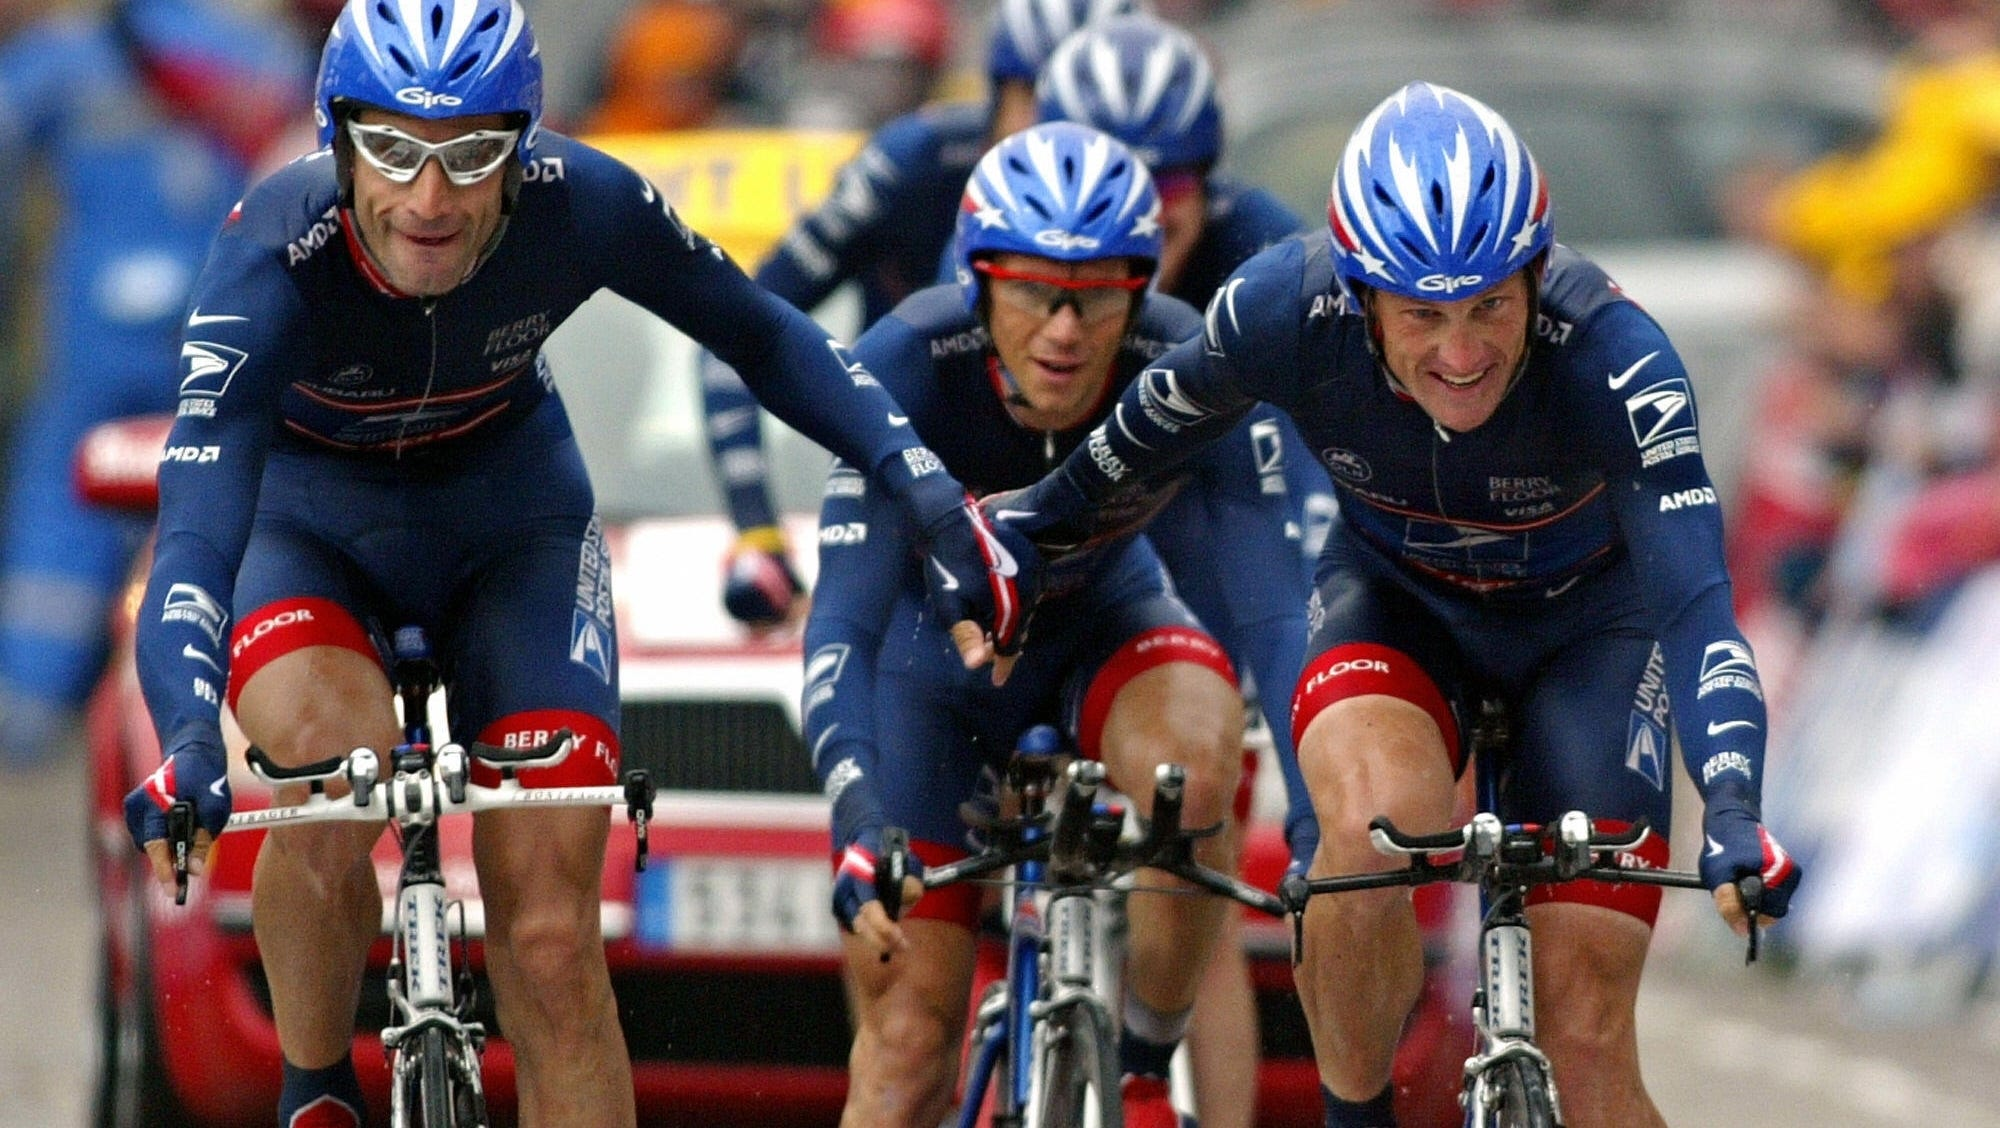 Admission by Armstrong friend Hincapie stands out